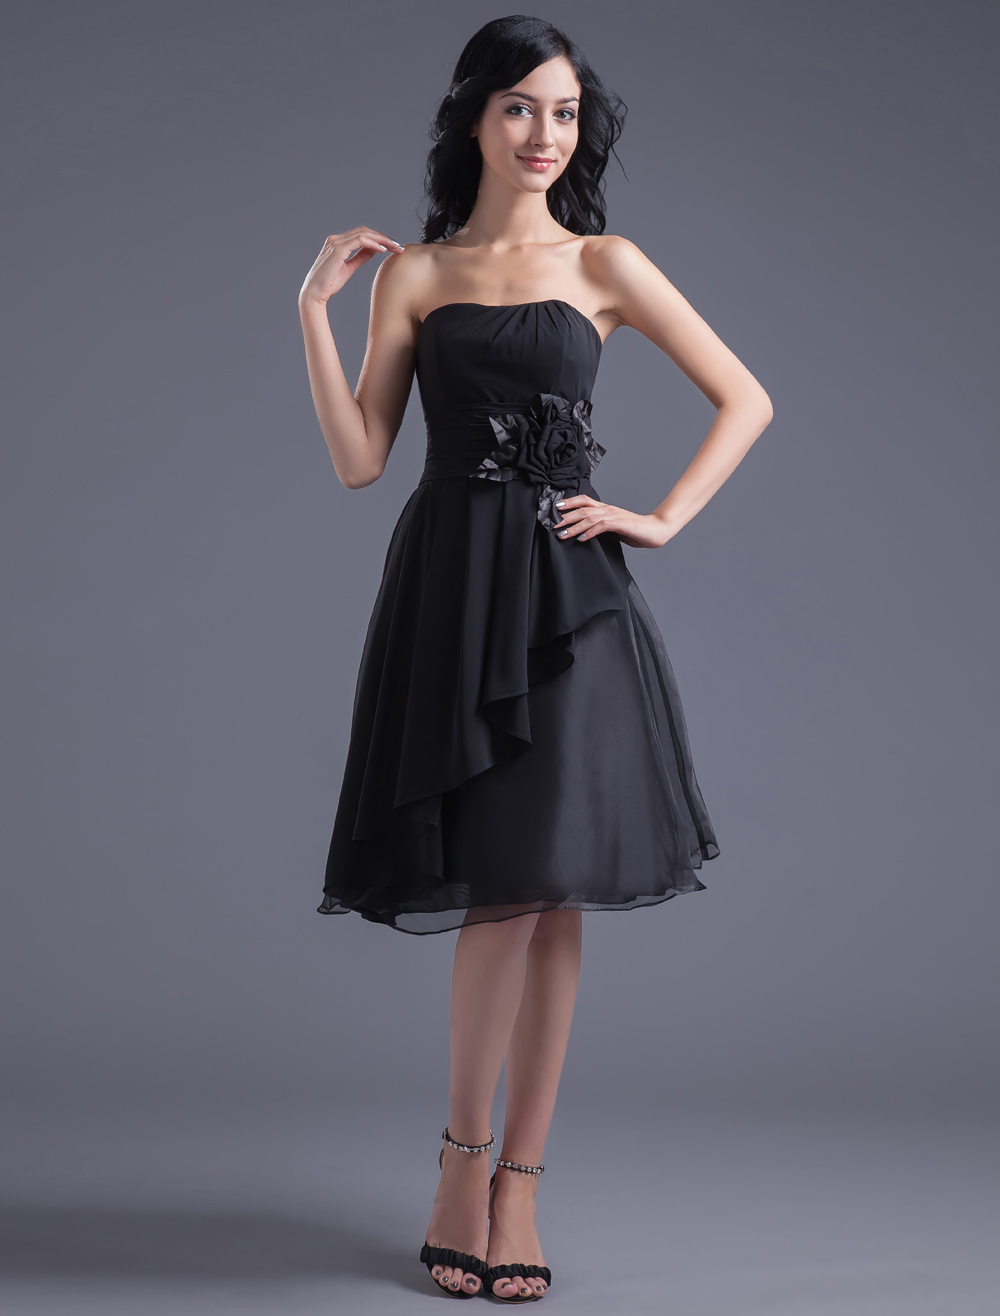 A-line Black Chiffon Floral Strapless Knee-Length Fashion Bridesmaid Dress